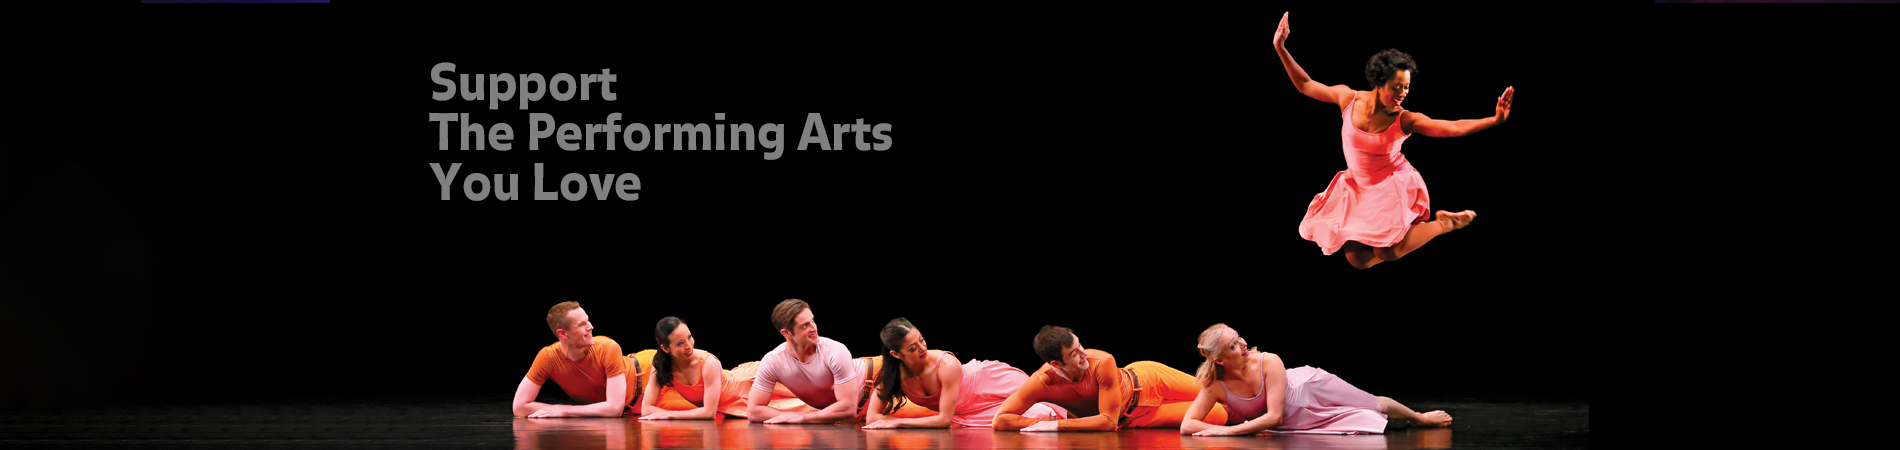 Support The Performing Arts You Love